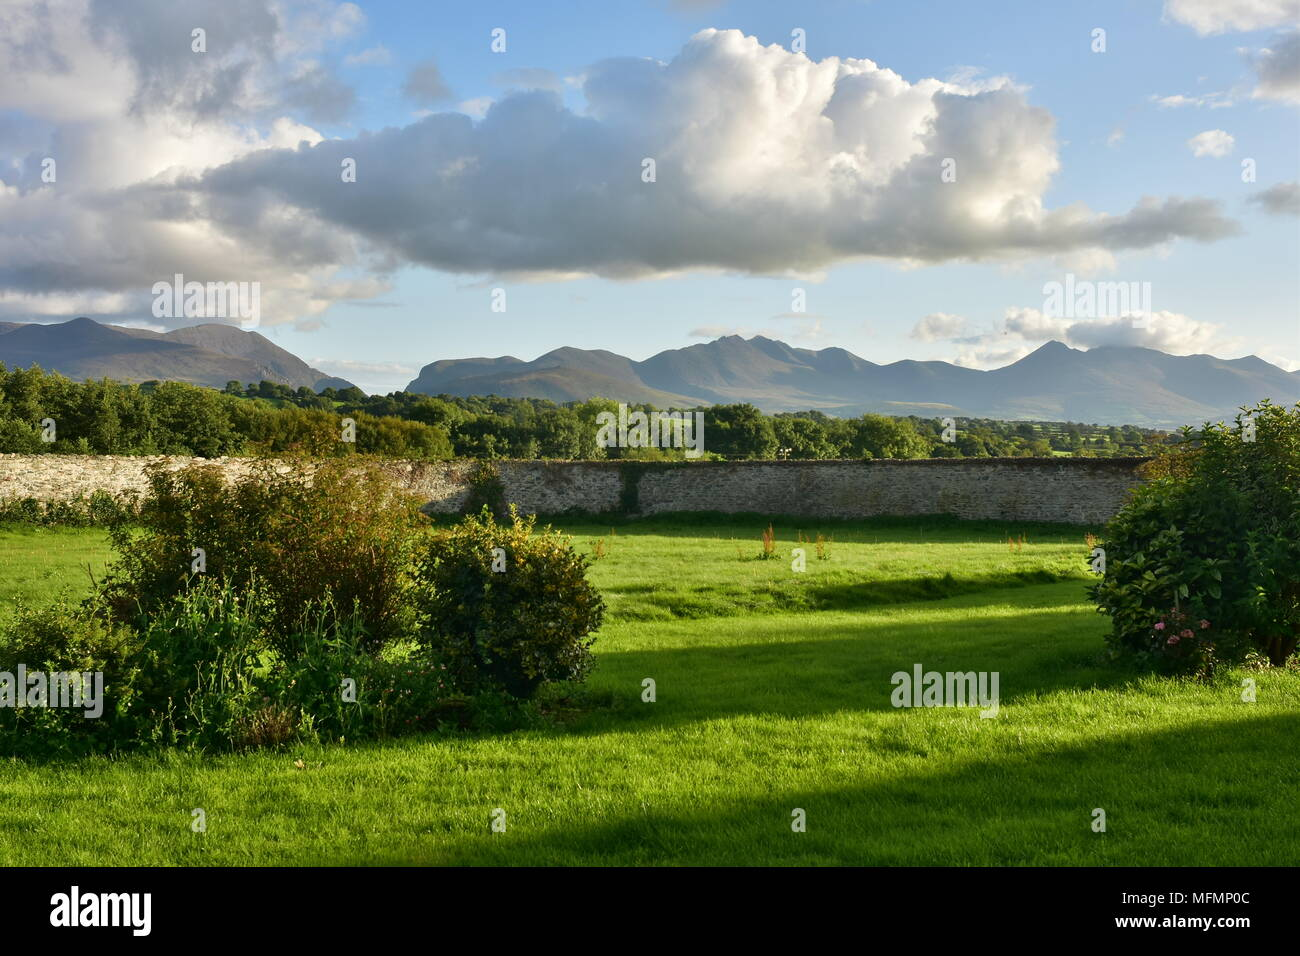 Fresh green meadows surrounded by stone walls with hills blending with clouds in far background in countryside of County Kerry in Ireland. Stock Photo